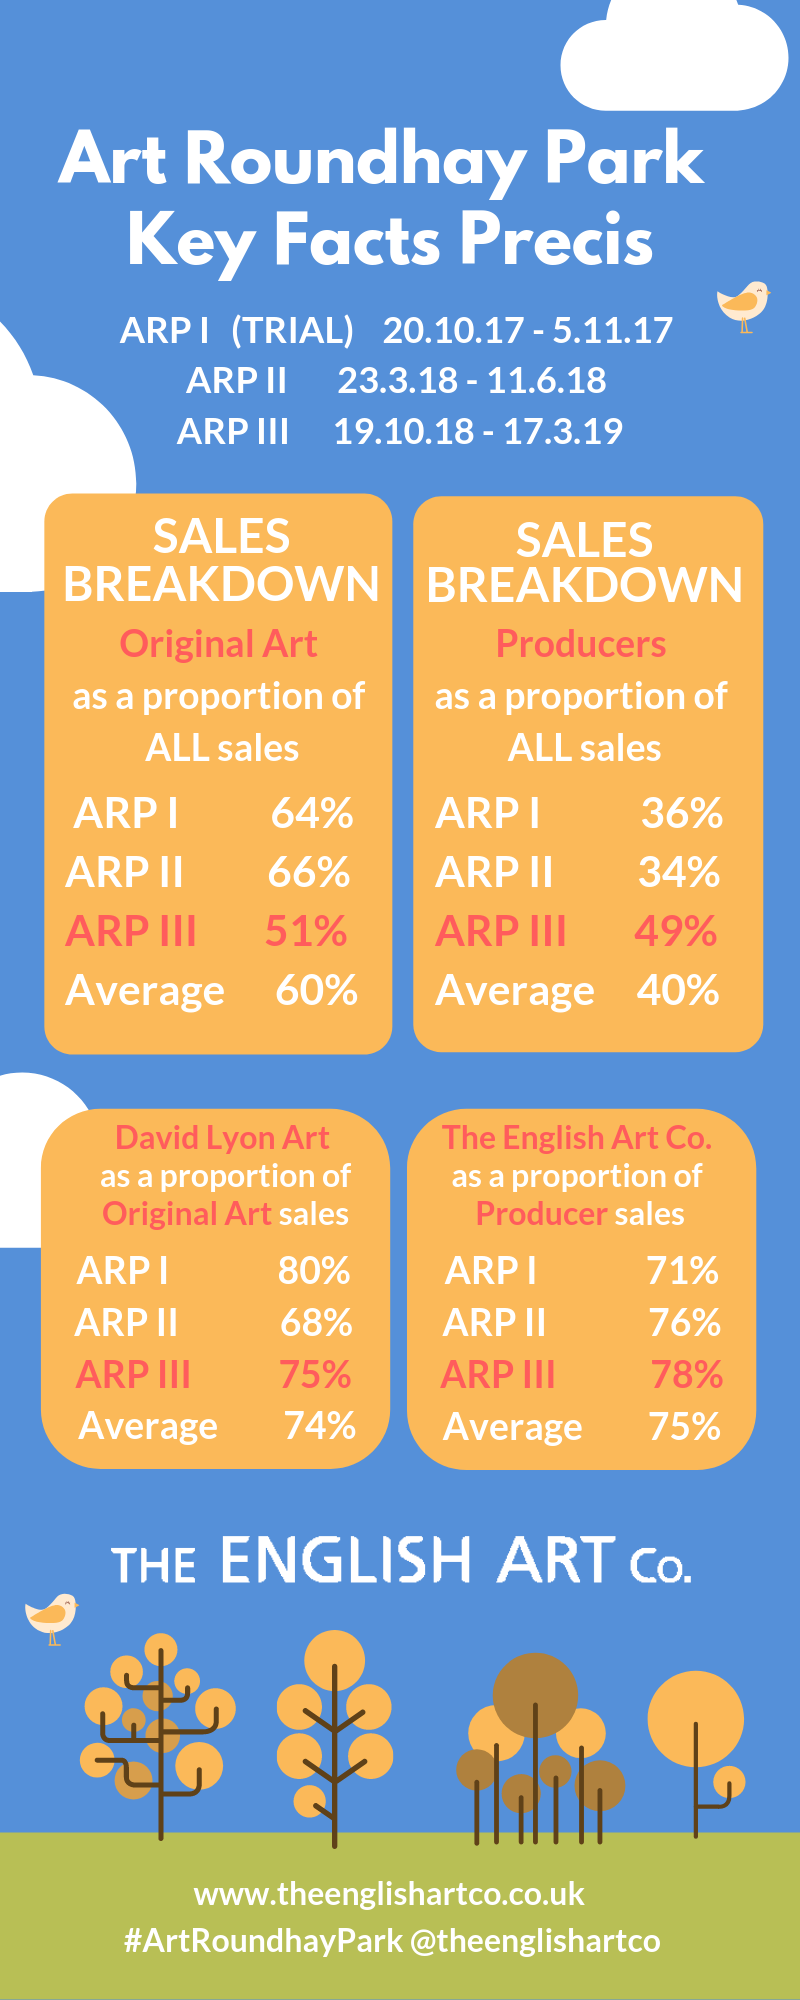 ARPPrecisInfographic2.png